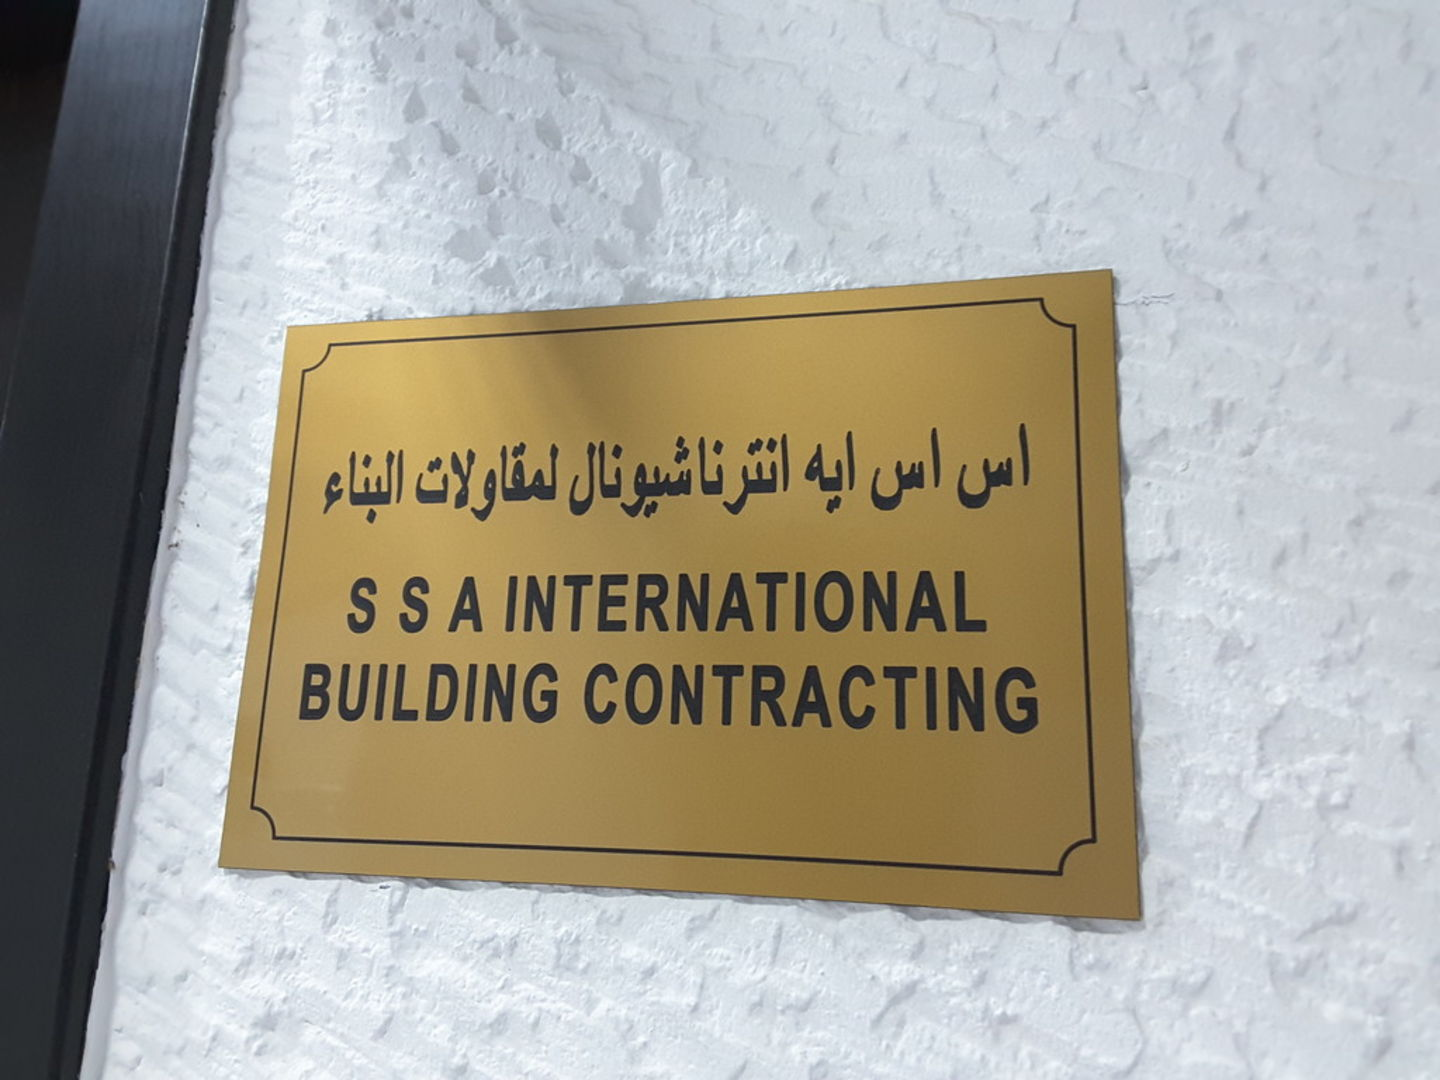 Walif-business-s-s-a-international-building-contracting